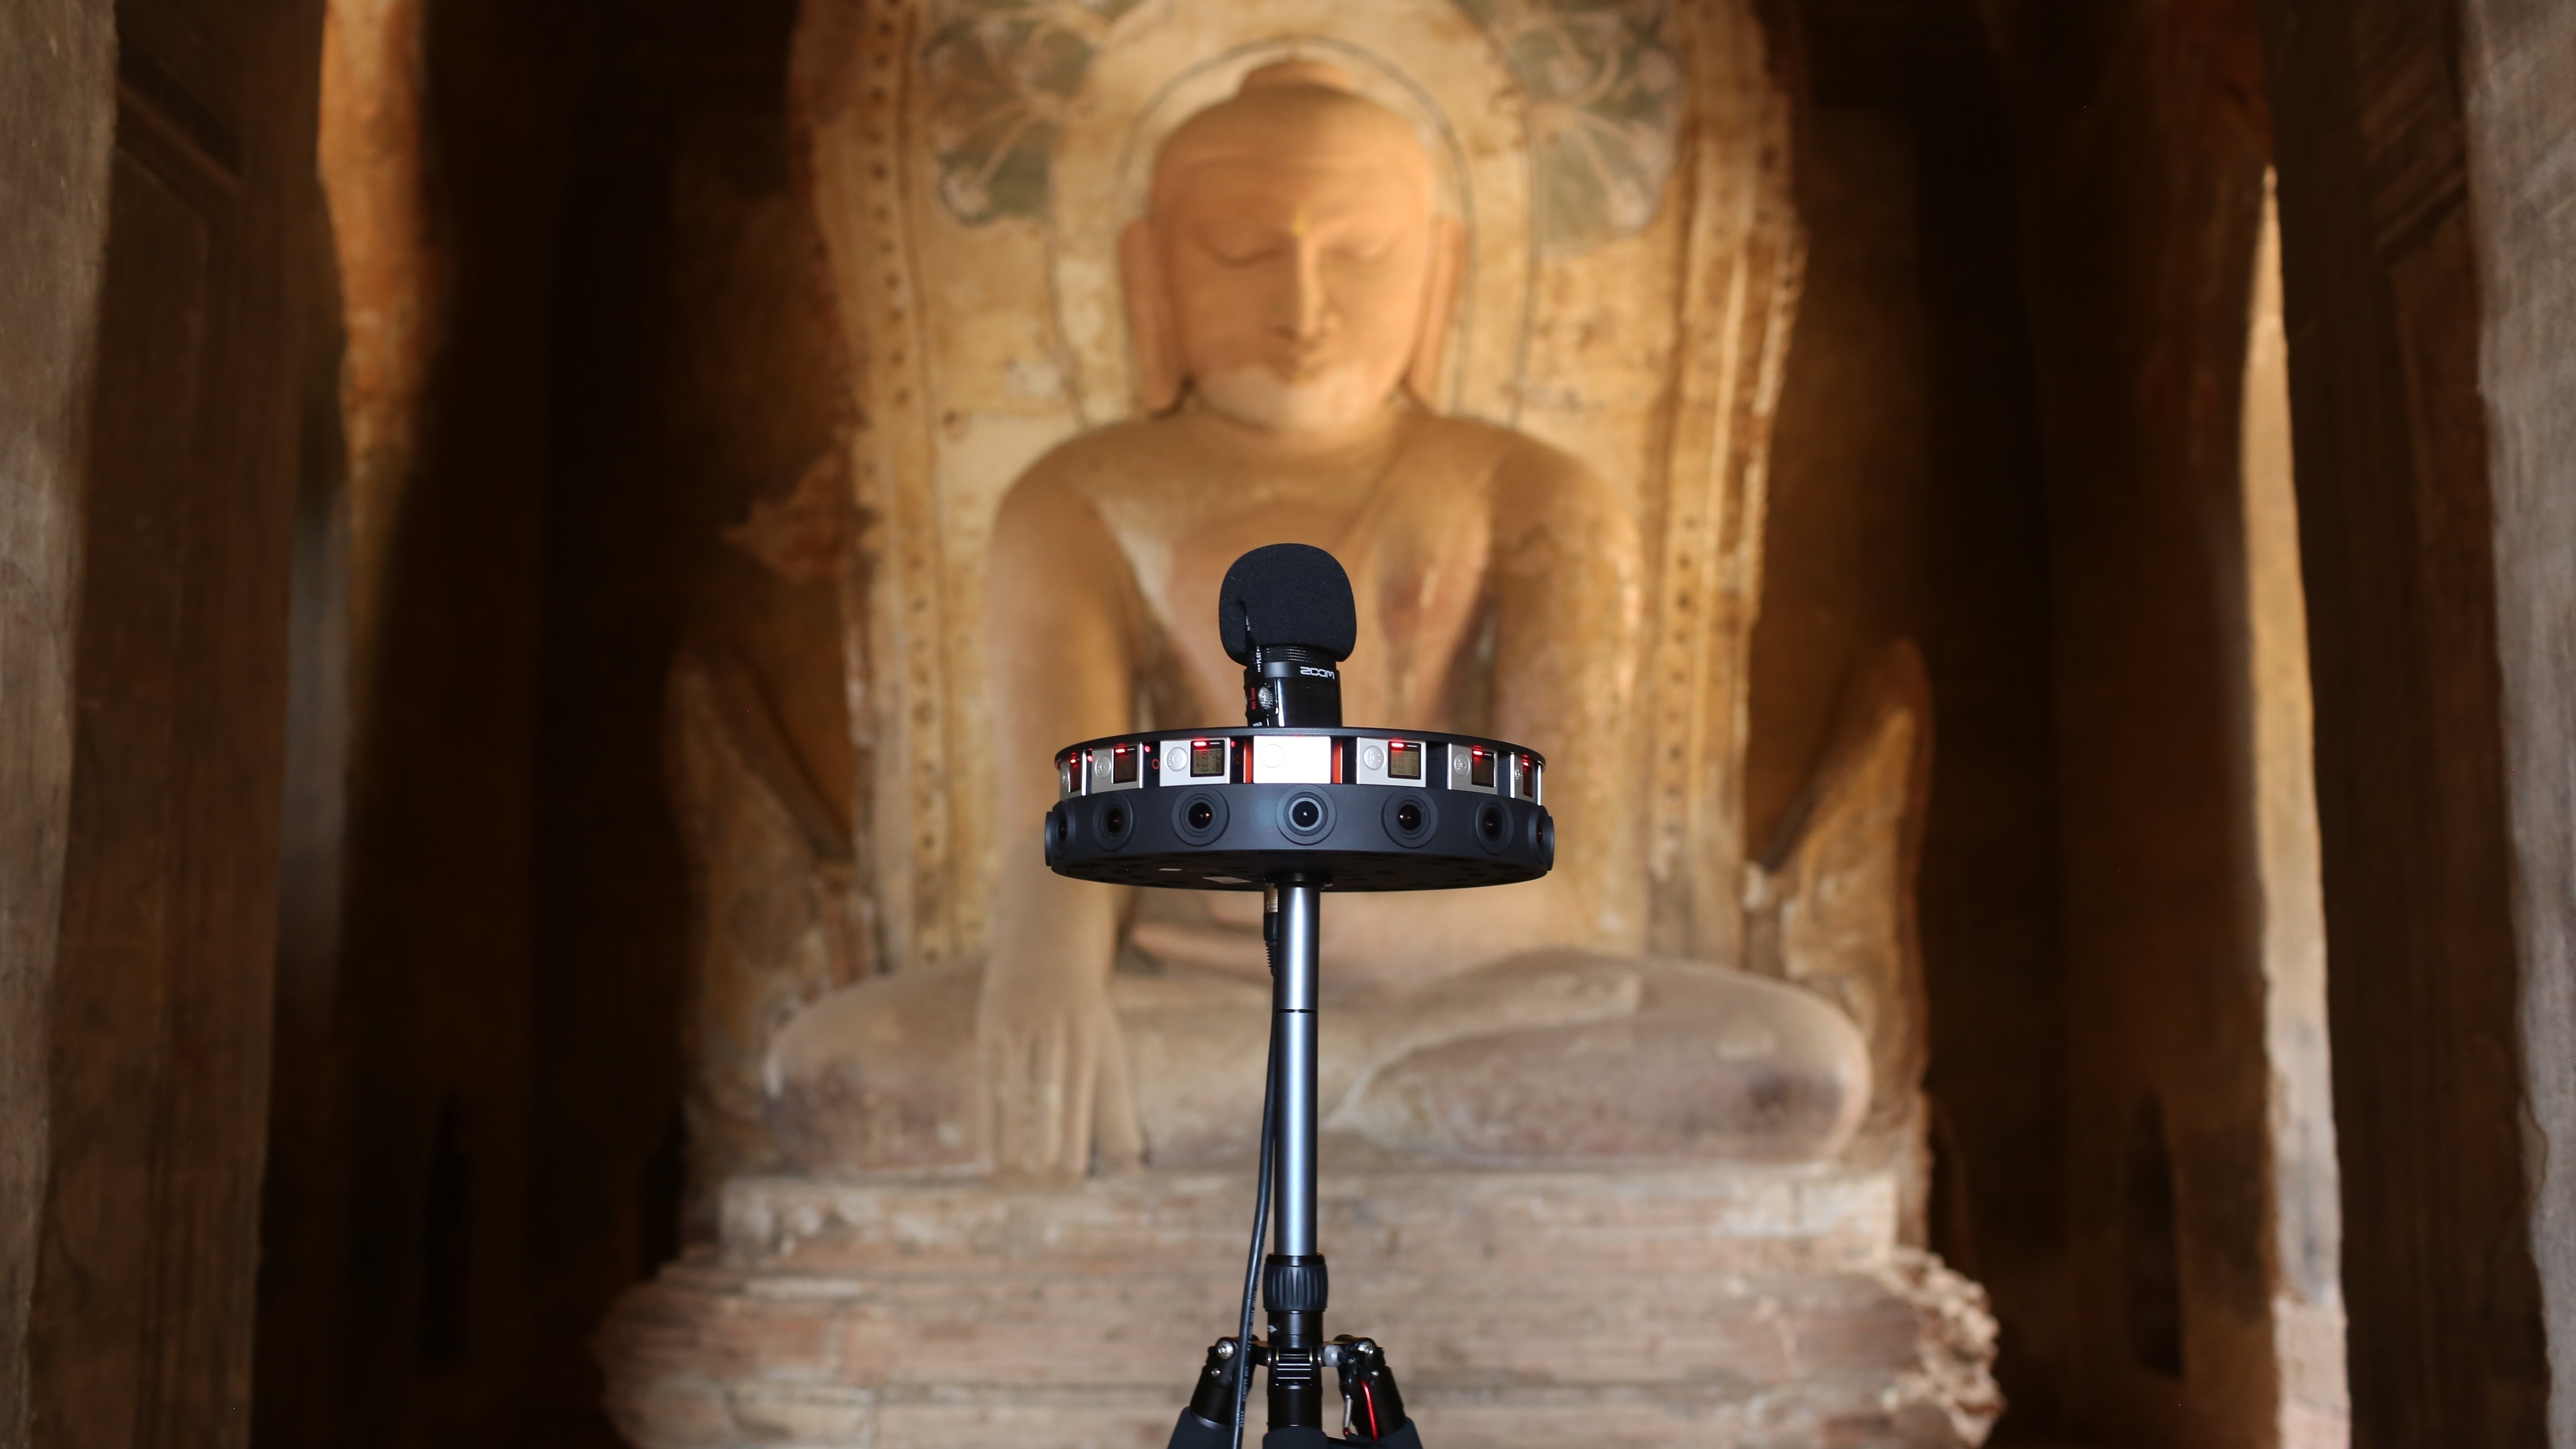 A microphone with a wheel attached sits in front of a Buddha statue